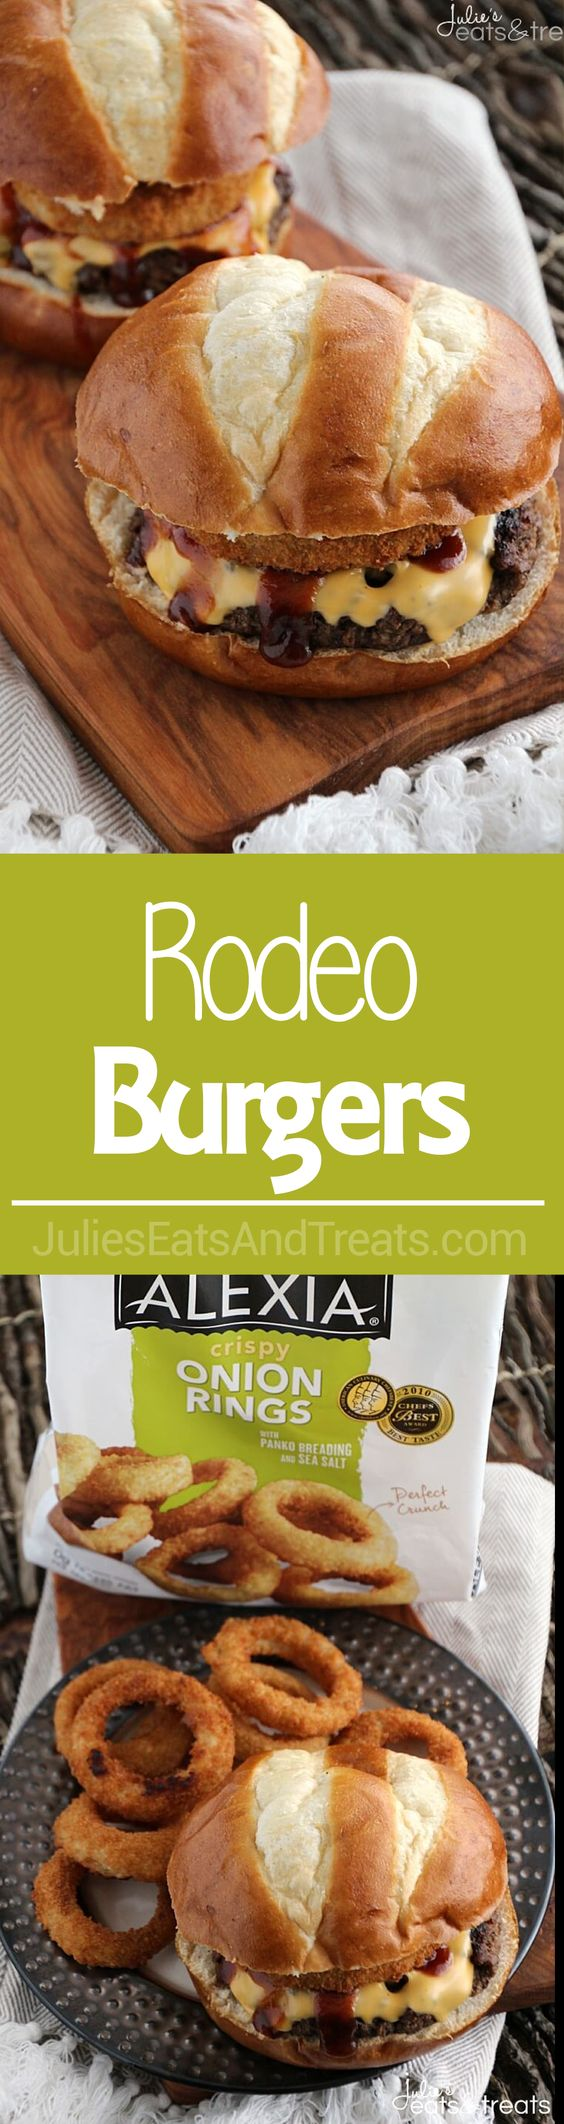 Rodeo, Grilled hamburgers and Burgers on Pinterest